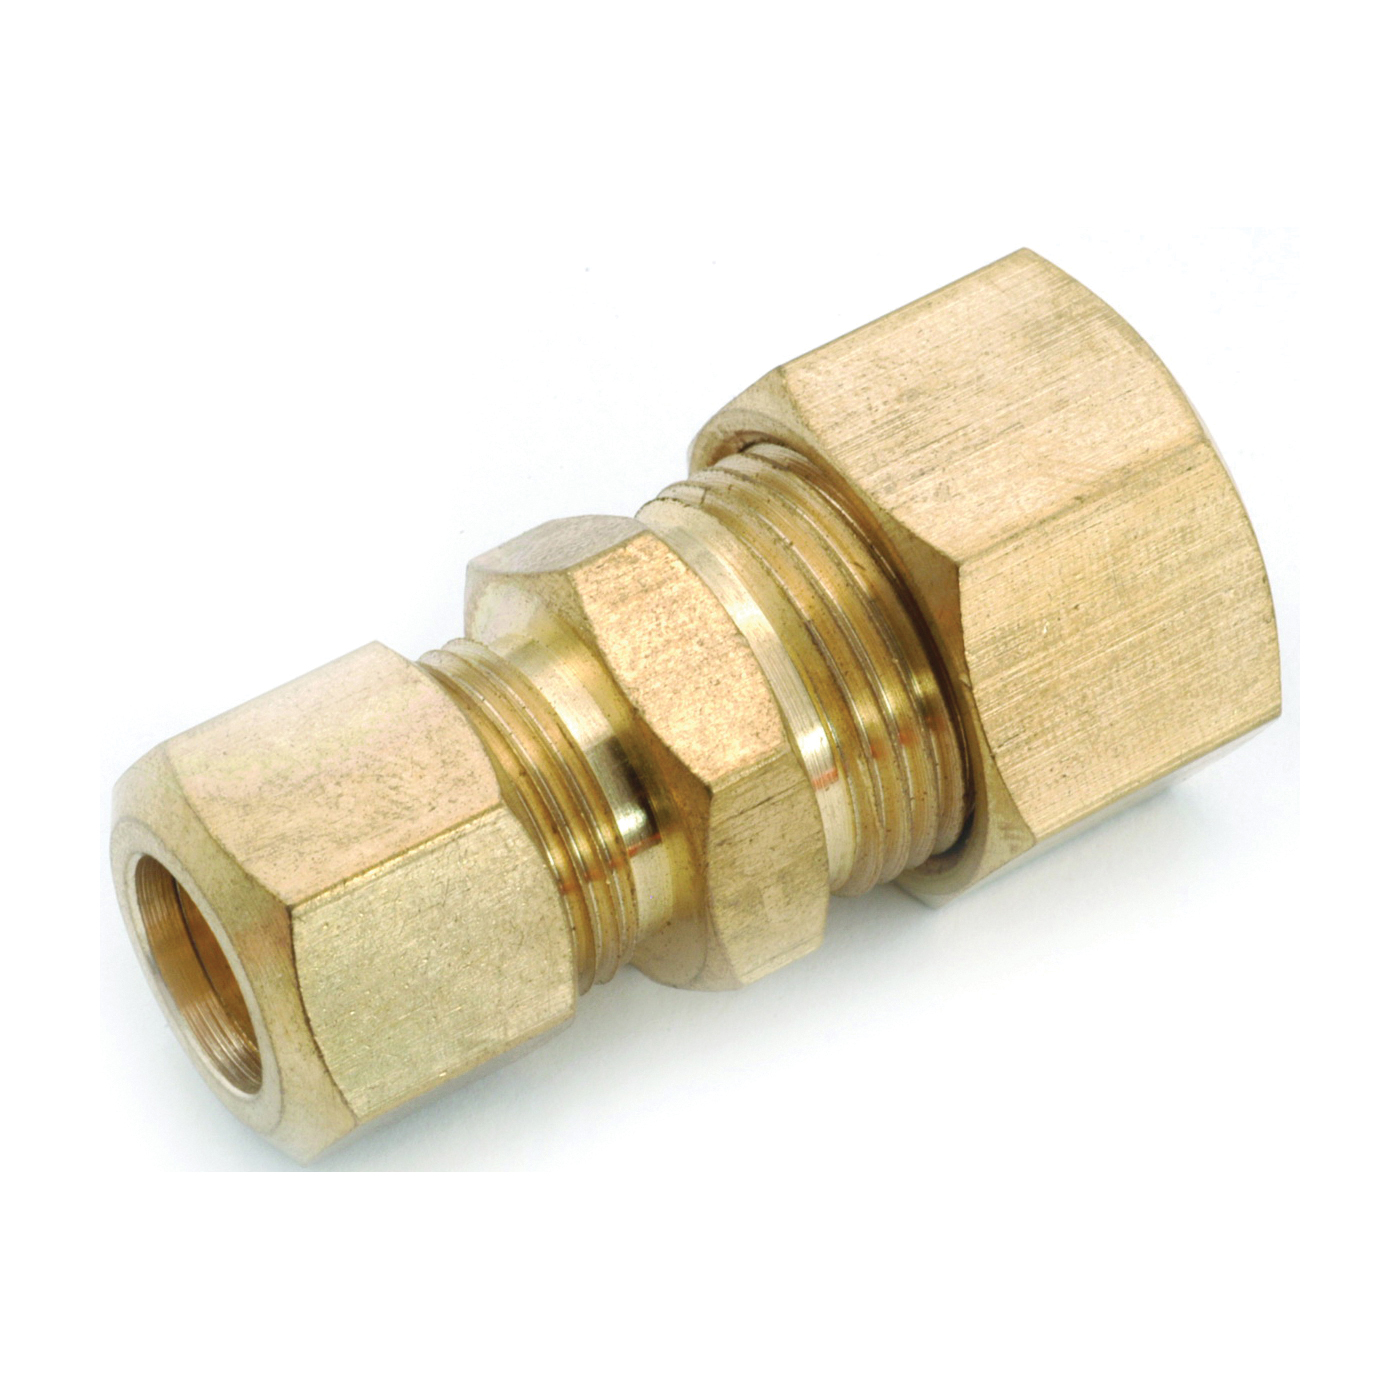 Picture of Anderson Metals 750082-0806 Tube Reducing Union, 1/2 x 3/8 in, Compression, Brass